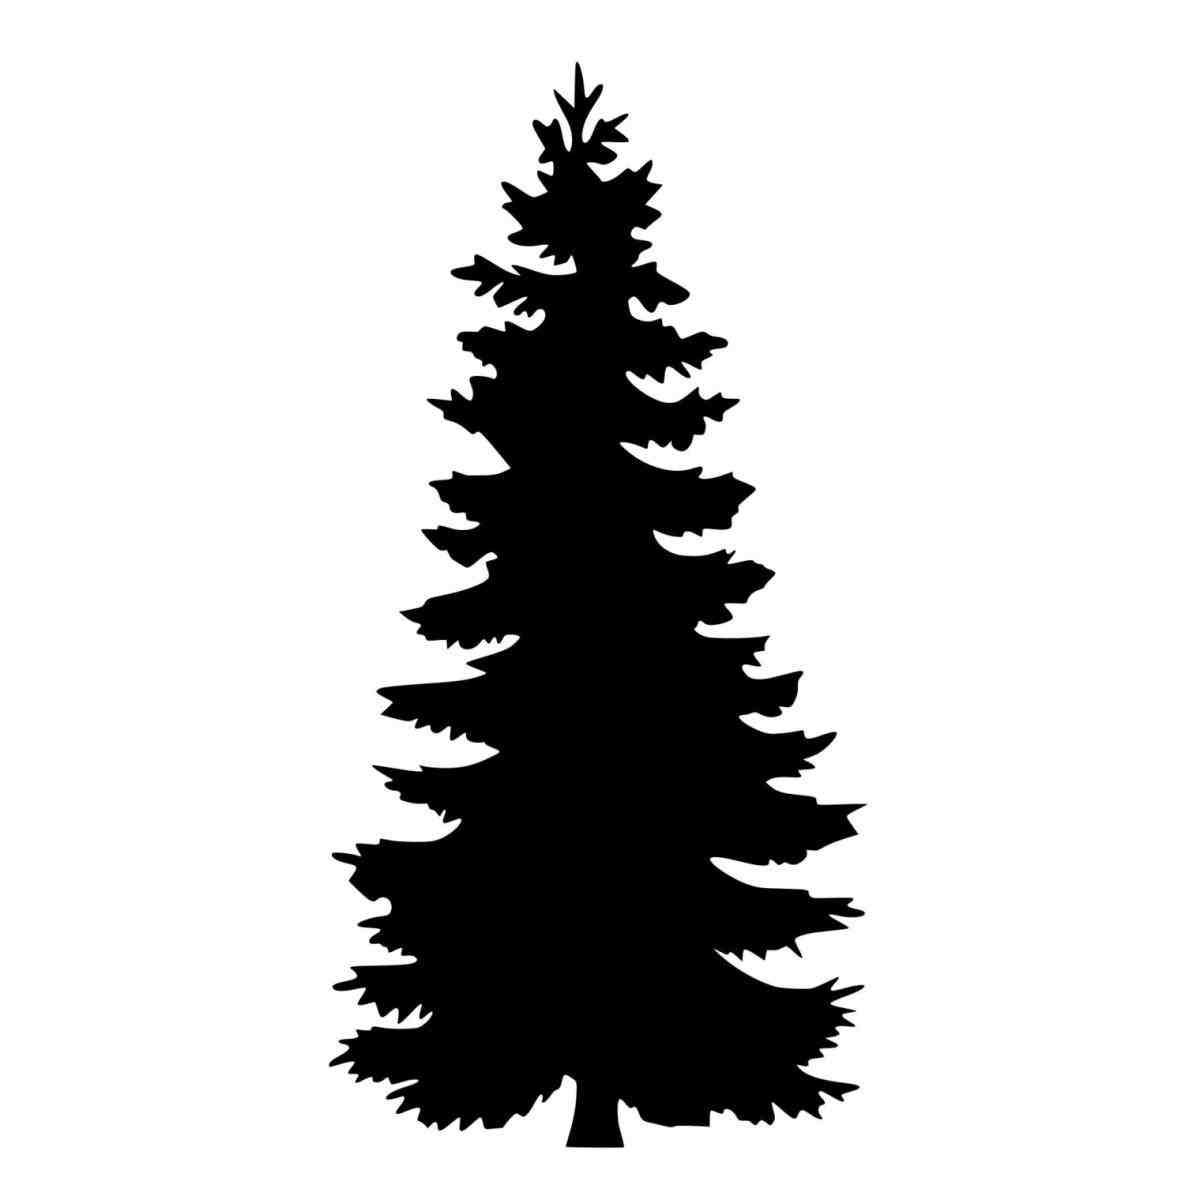 1185x1185 Evergreen Tree Silhouette.jpg National Parks